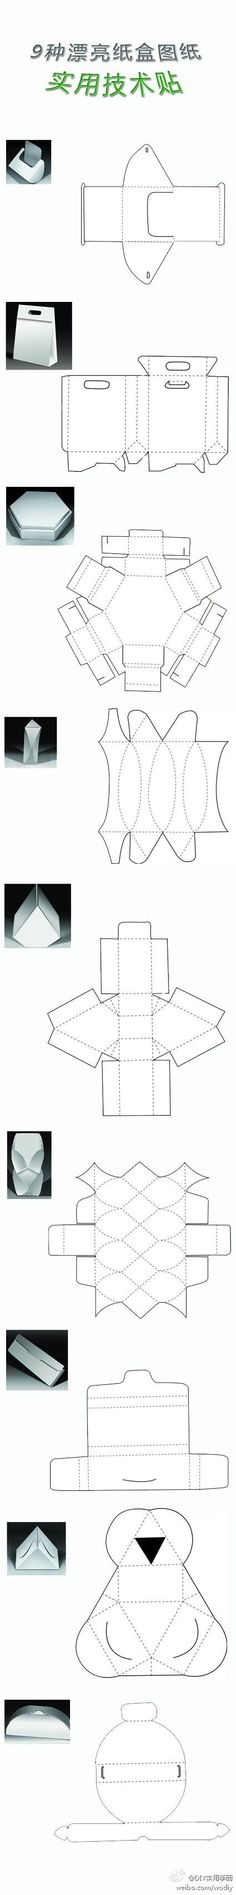 Origami Bag Diy Box Templates 21 Ideas For 2019 Origami Paper, Diy Paper, Paper Crafting, Origami Bag, Diy Origami, Paper Gifts, Box Packaging, Packaging Design, Paper Packaging